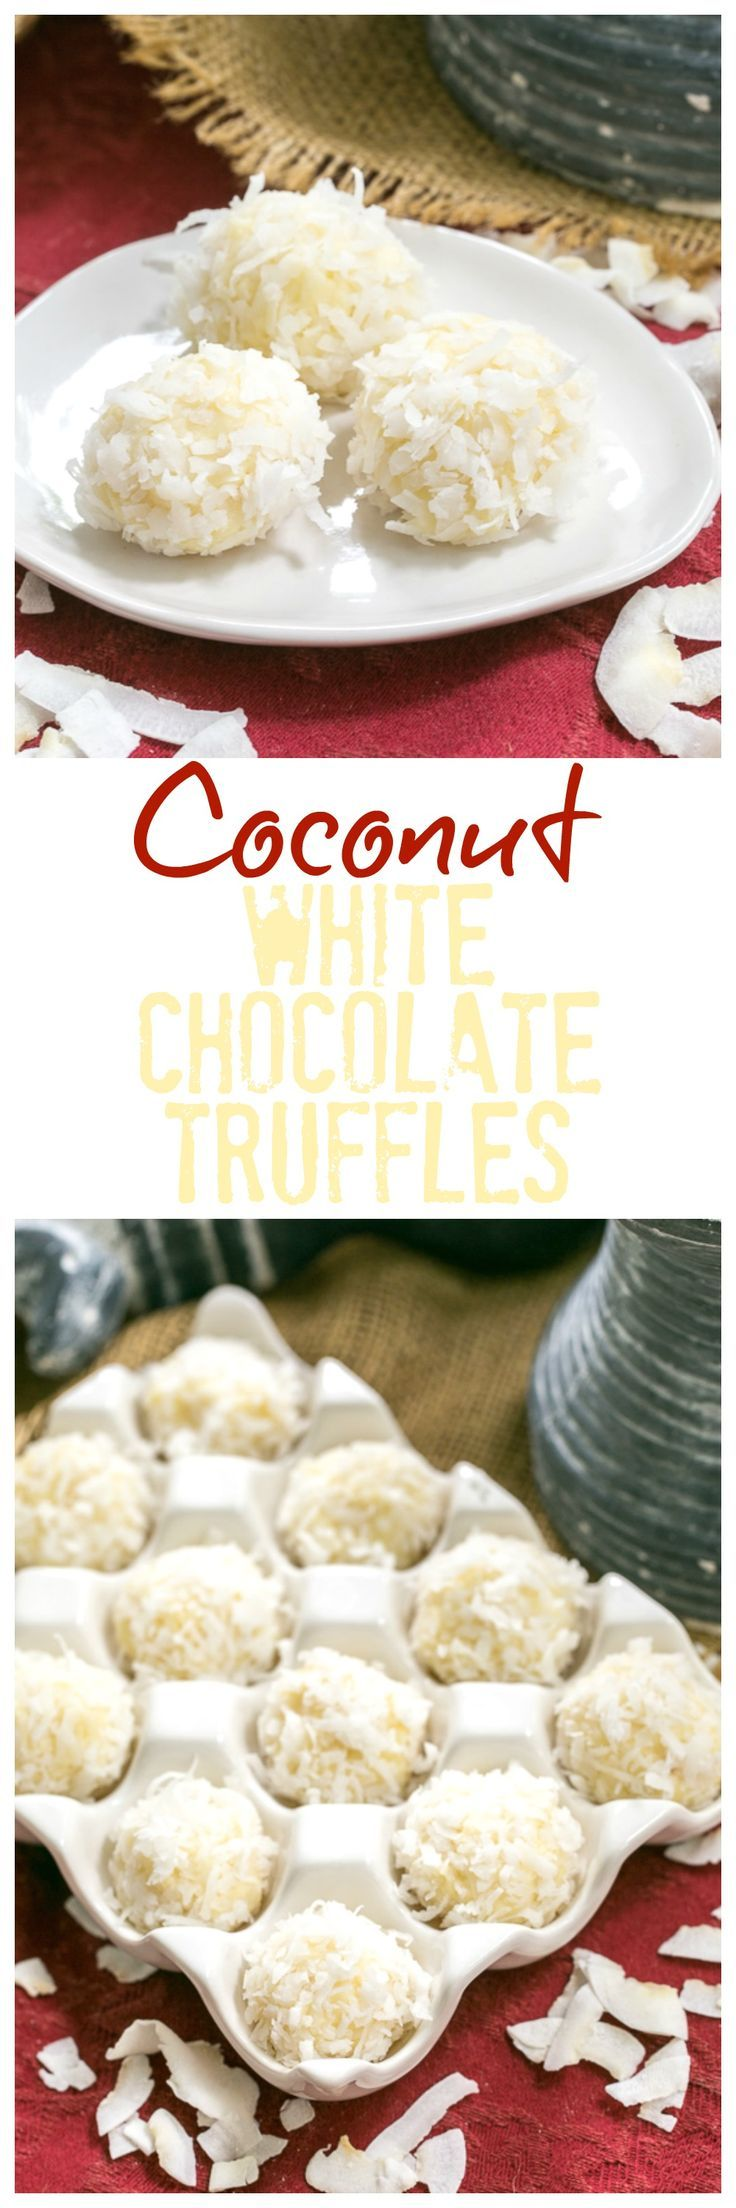 Coconut White Chocolate Truffles | An easy, decadent 4 ingredient recipe /lizzydo/